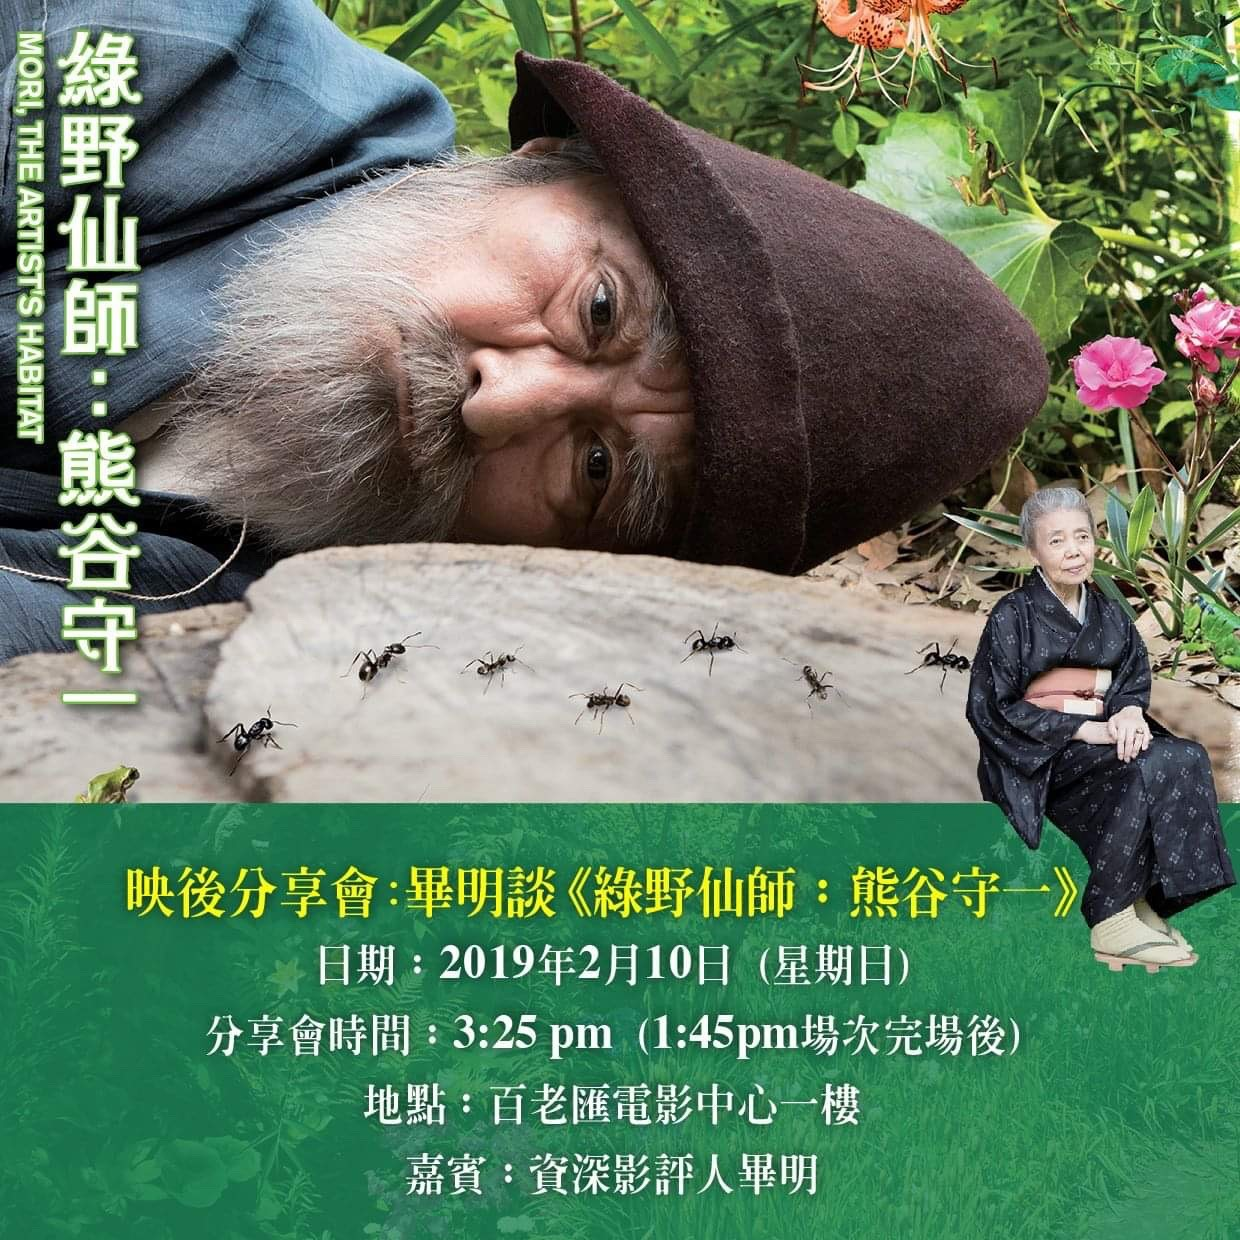 Mori, The Artist's Habitat Film Talk Broadway Cinematheque 百老匯電影中心 BC